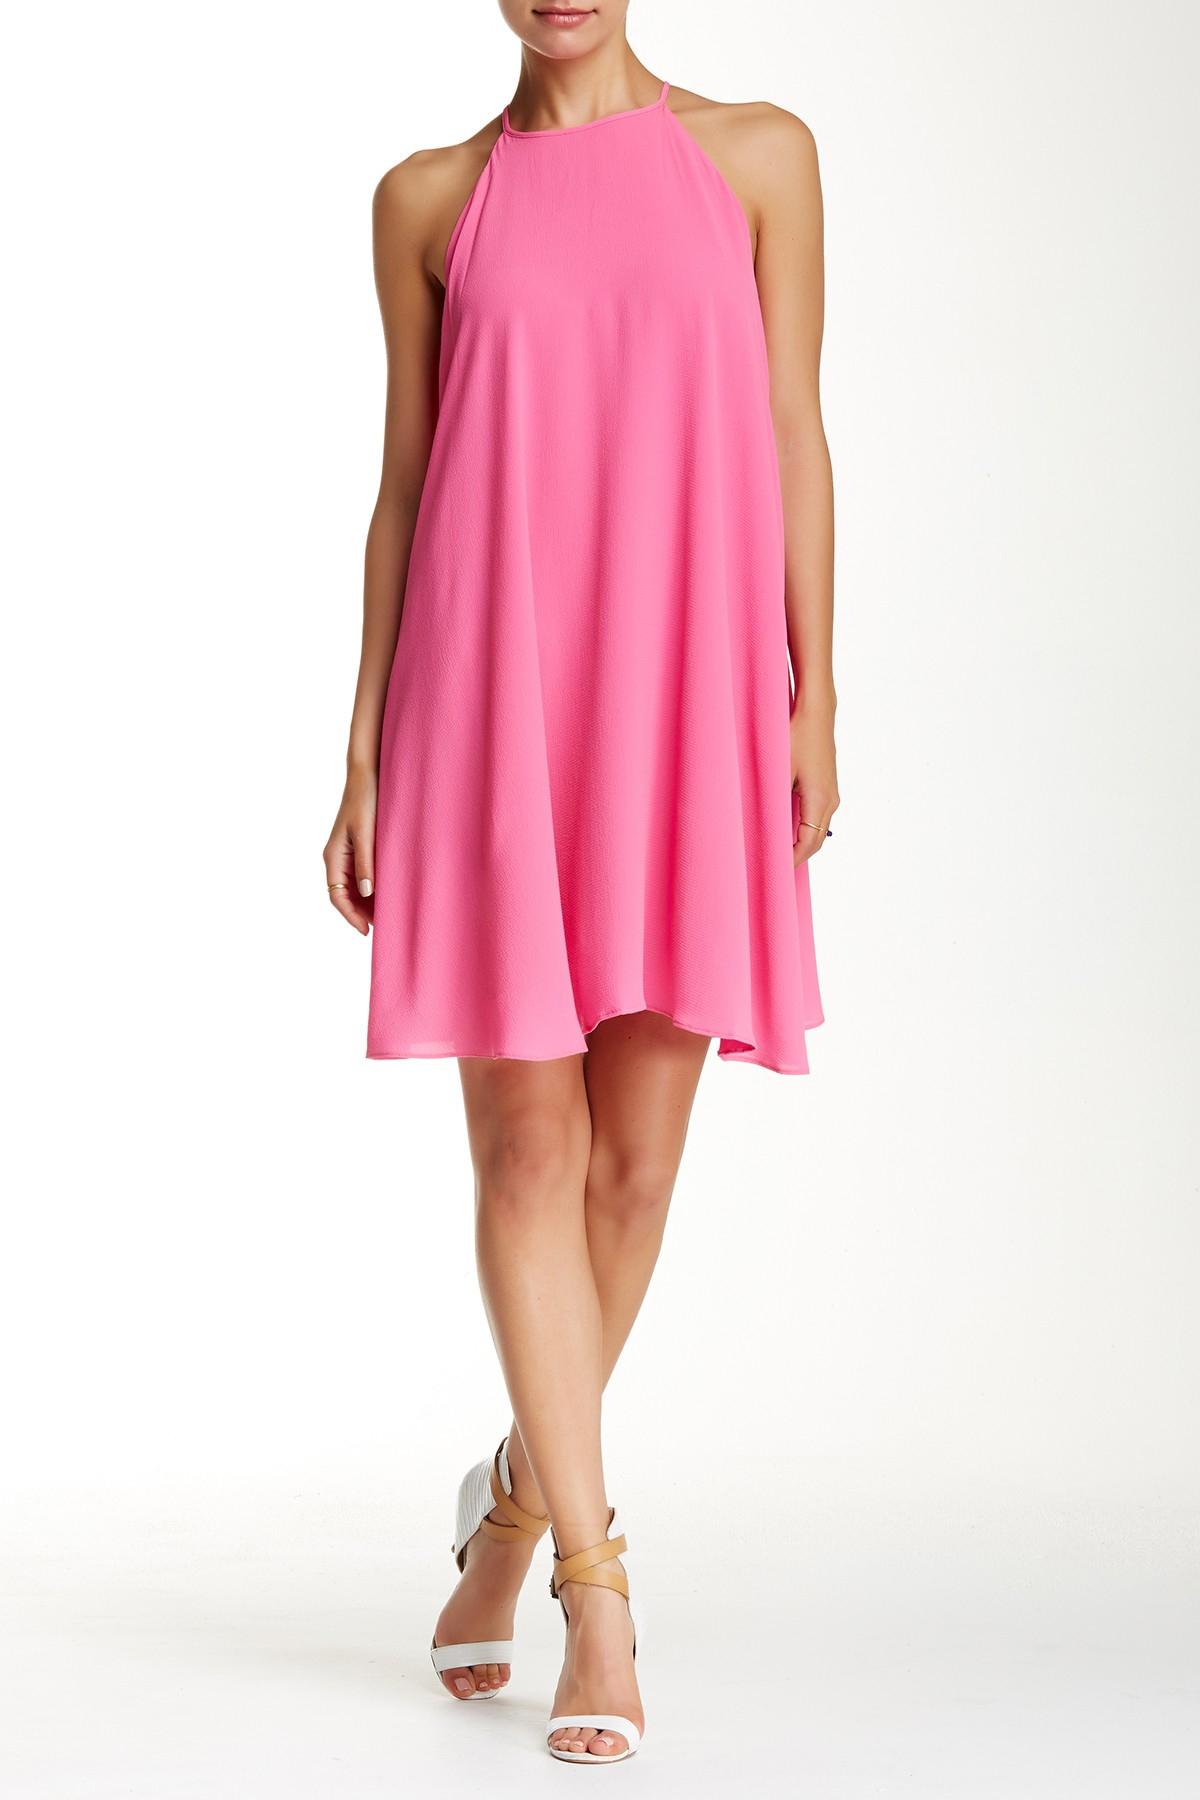 Alexia admor sleeveless summer dress in pink lyst for Nordstrom rack dresses pour mariage